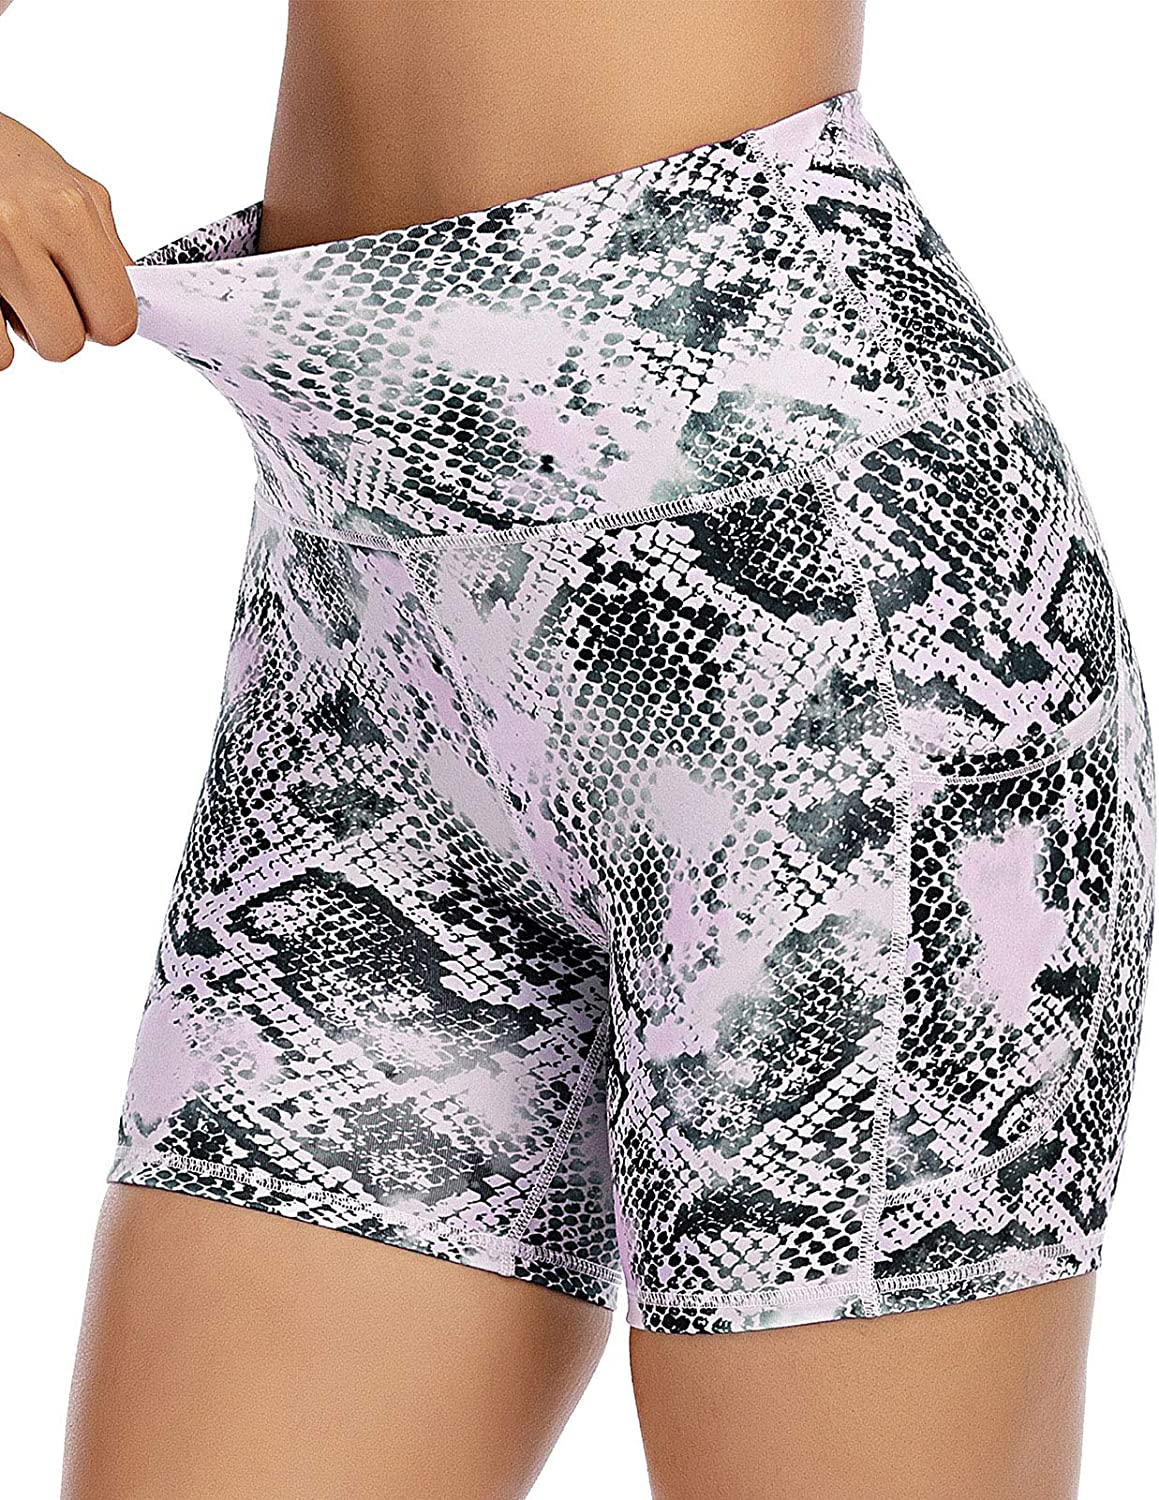 FAFAIR Workout Shorts for Women Bike Sports Yoga Athletic Running Spandex Shorts with Pockets High Waist